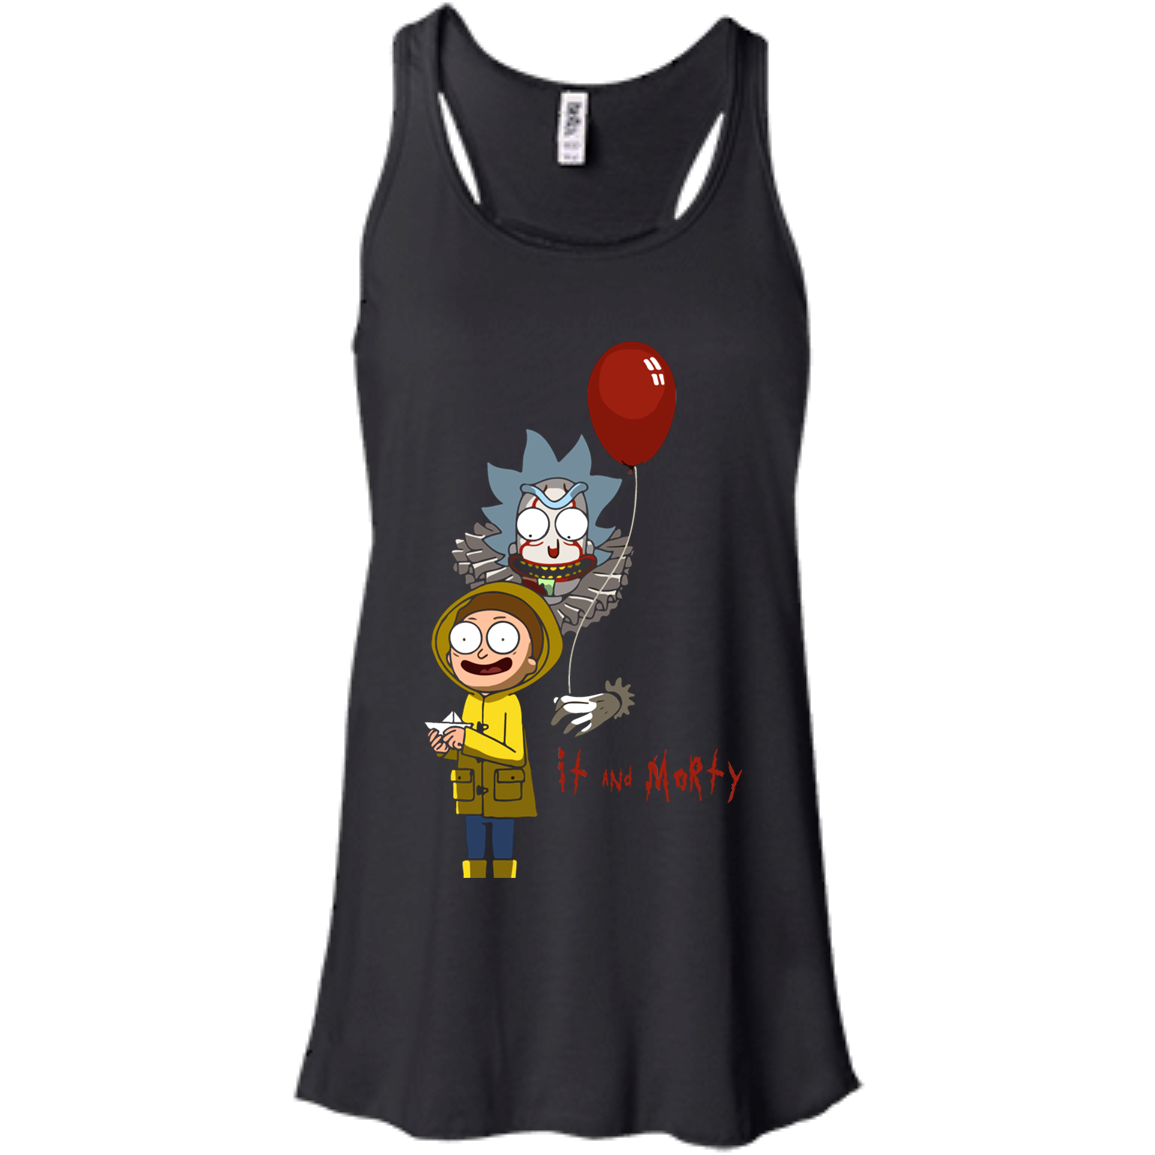 Rick and Morty IT movie and Morty tshirt, vneck, tank, hoodie